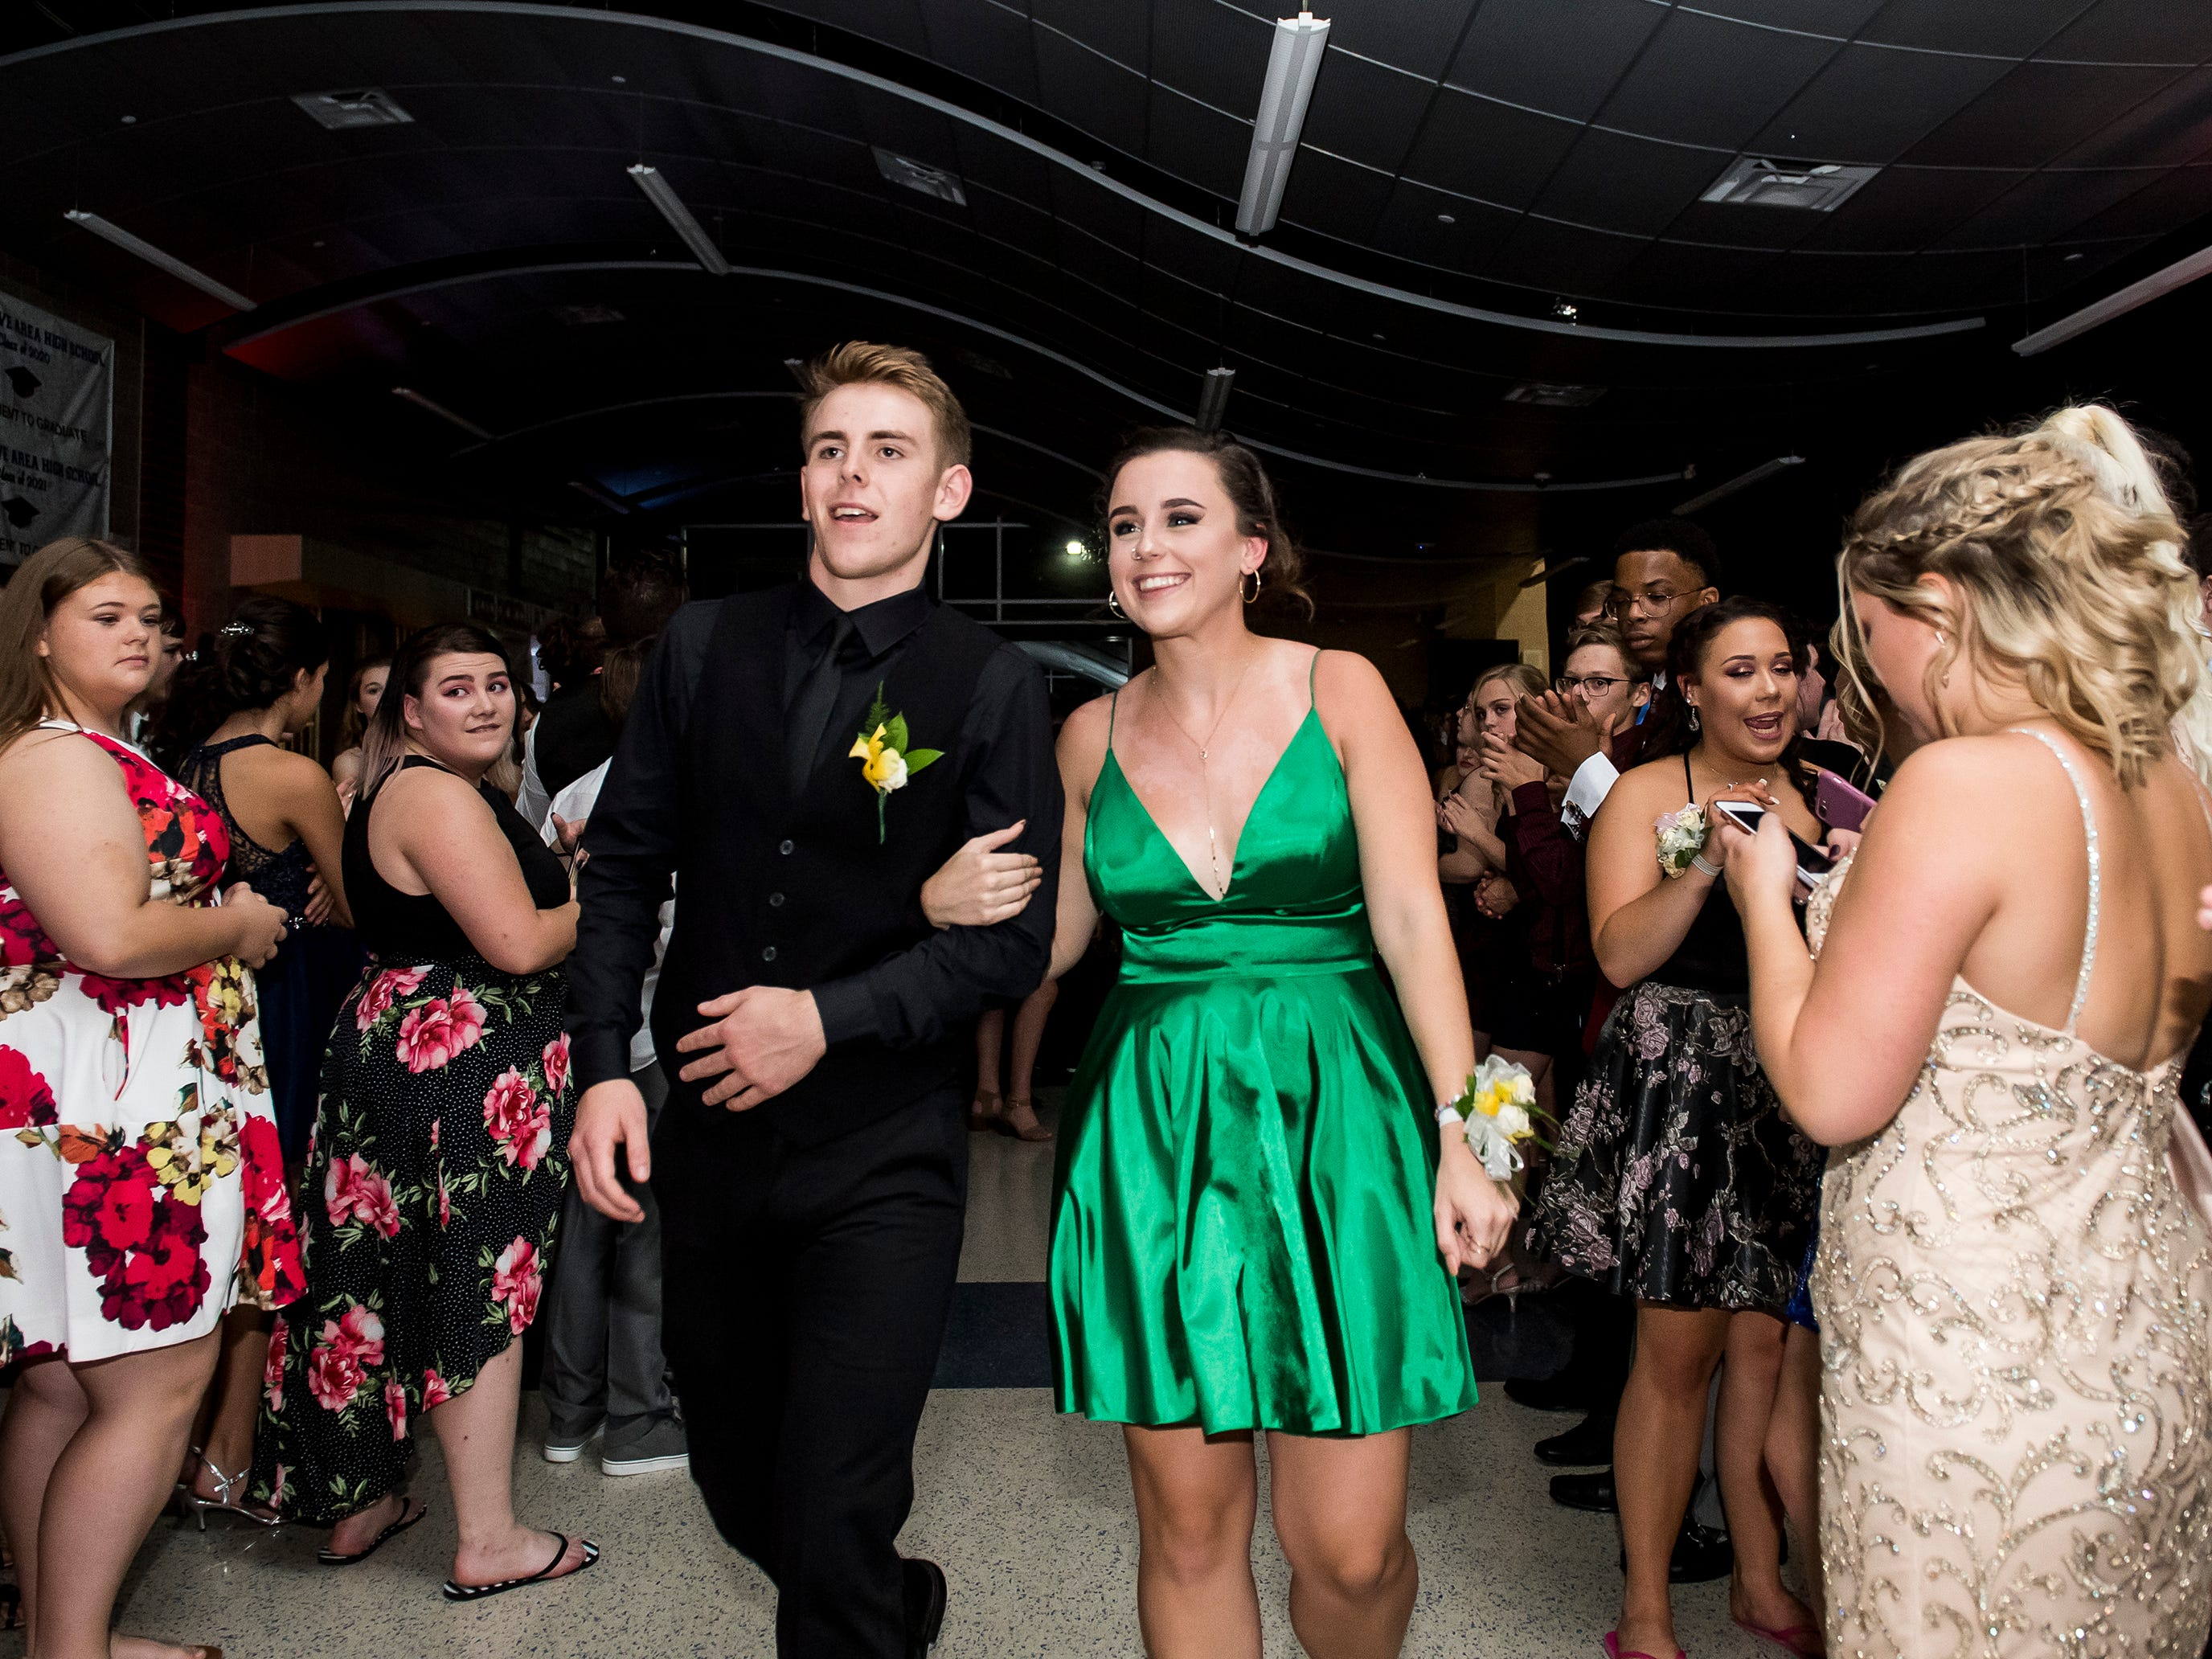 Students attend Spring Grove Area High School's homecoming dance on Saturday, October 13, 2018.